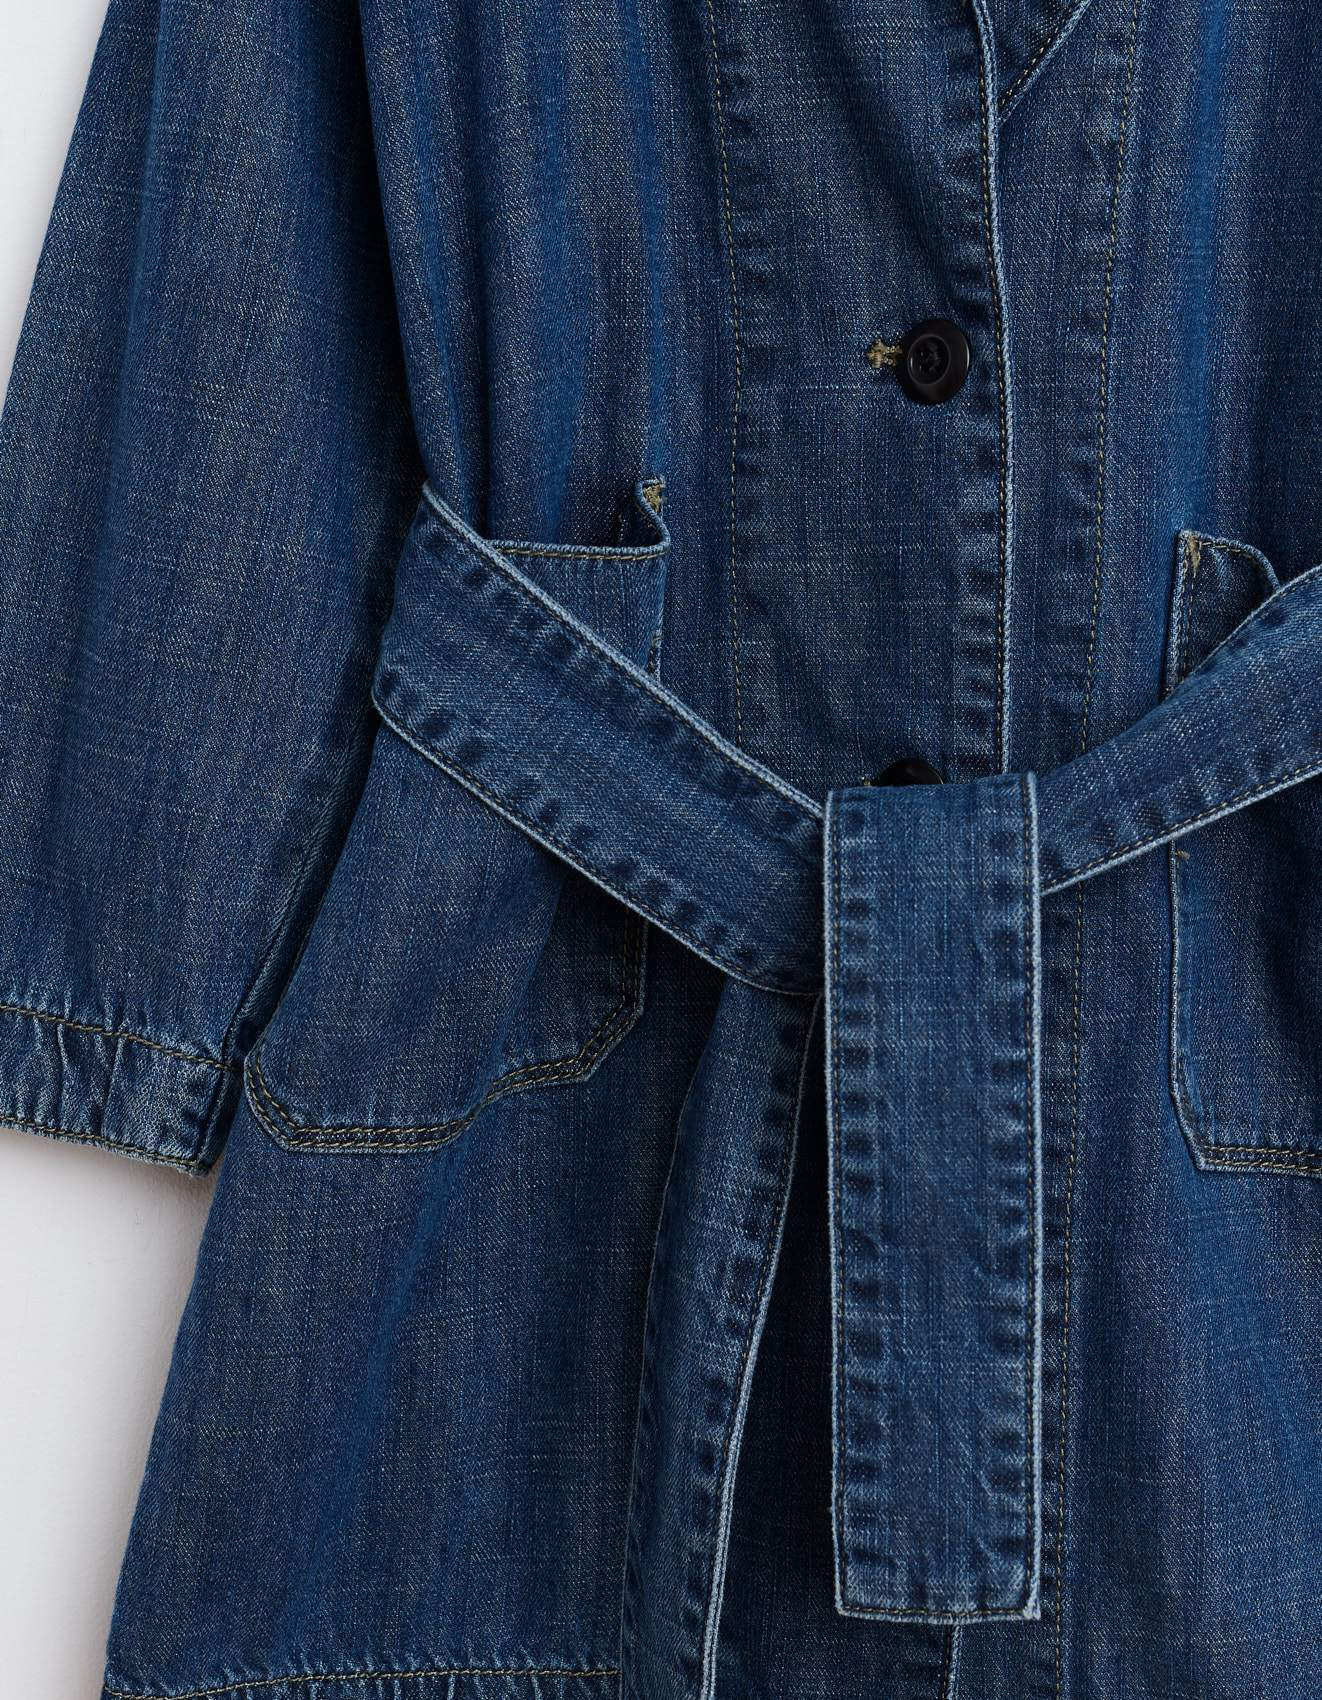 Bellerose dark blue denim, bathrobe-style coat for girls